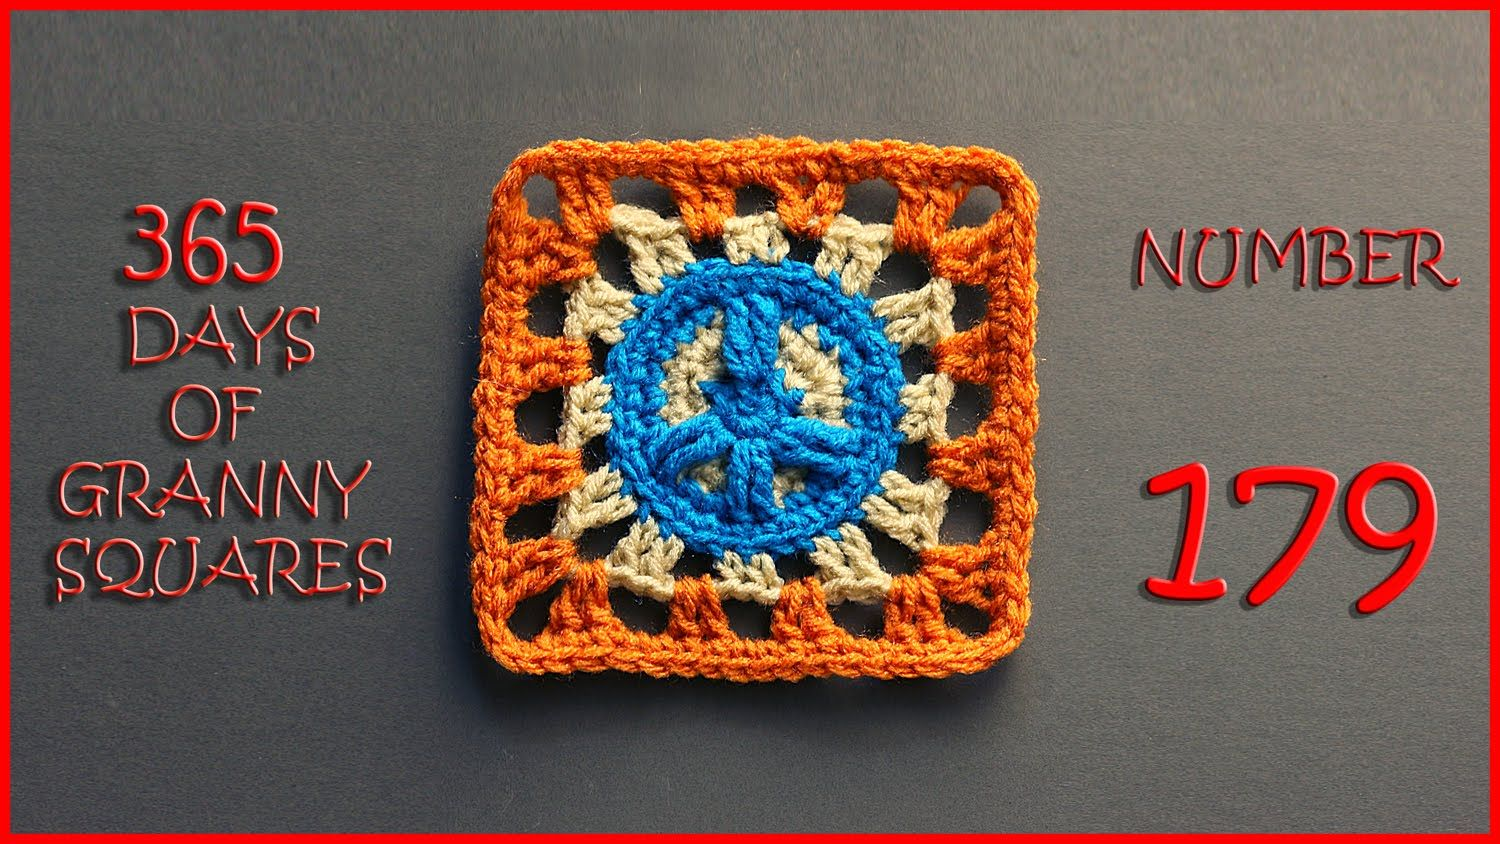 365 Days of Granny Squares Number 179 | Crochet granny squares ...